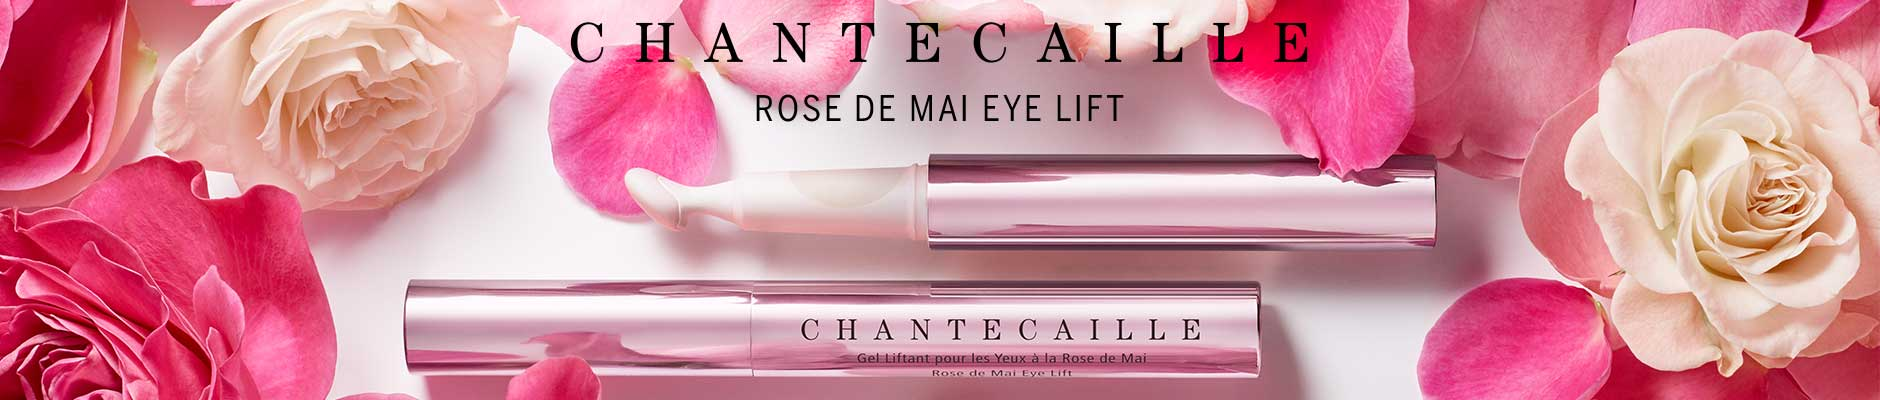 Chantecaille - Rose de mai eye lift